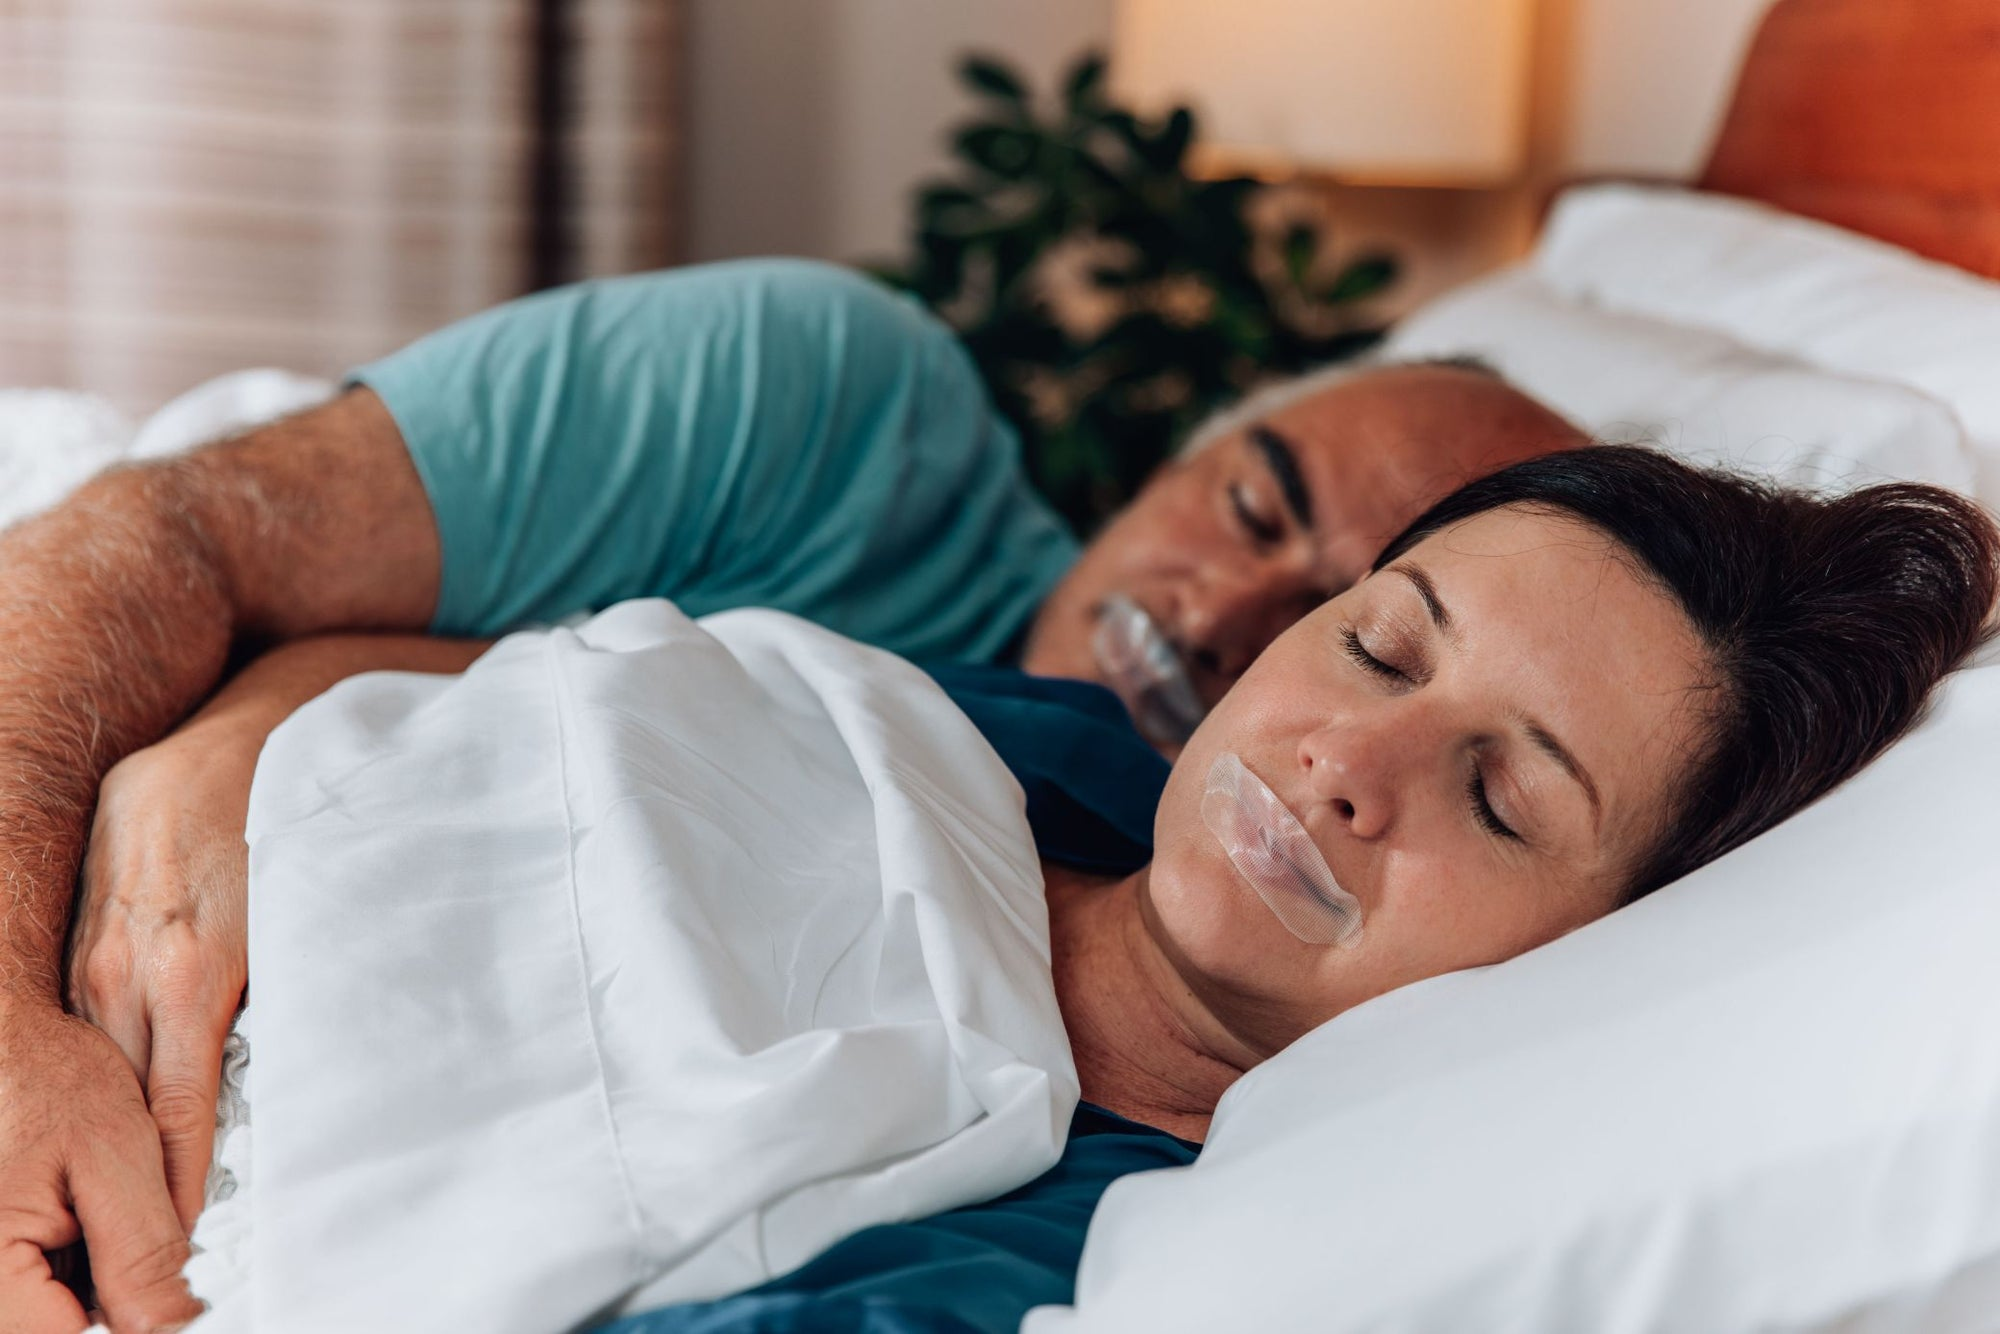 Nose Breathing Benefits: 5 Reasons why Nose Breathing is Better When you Sleep